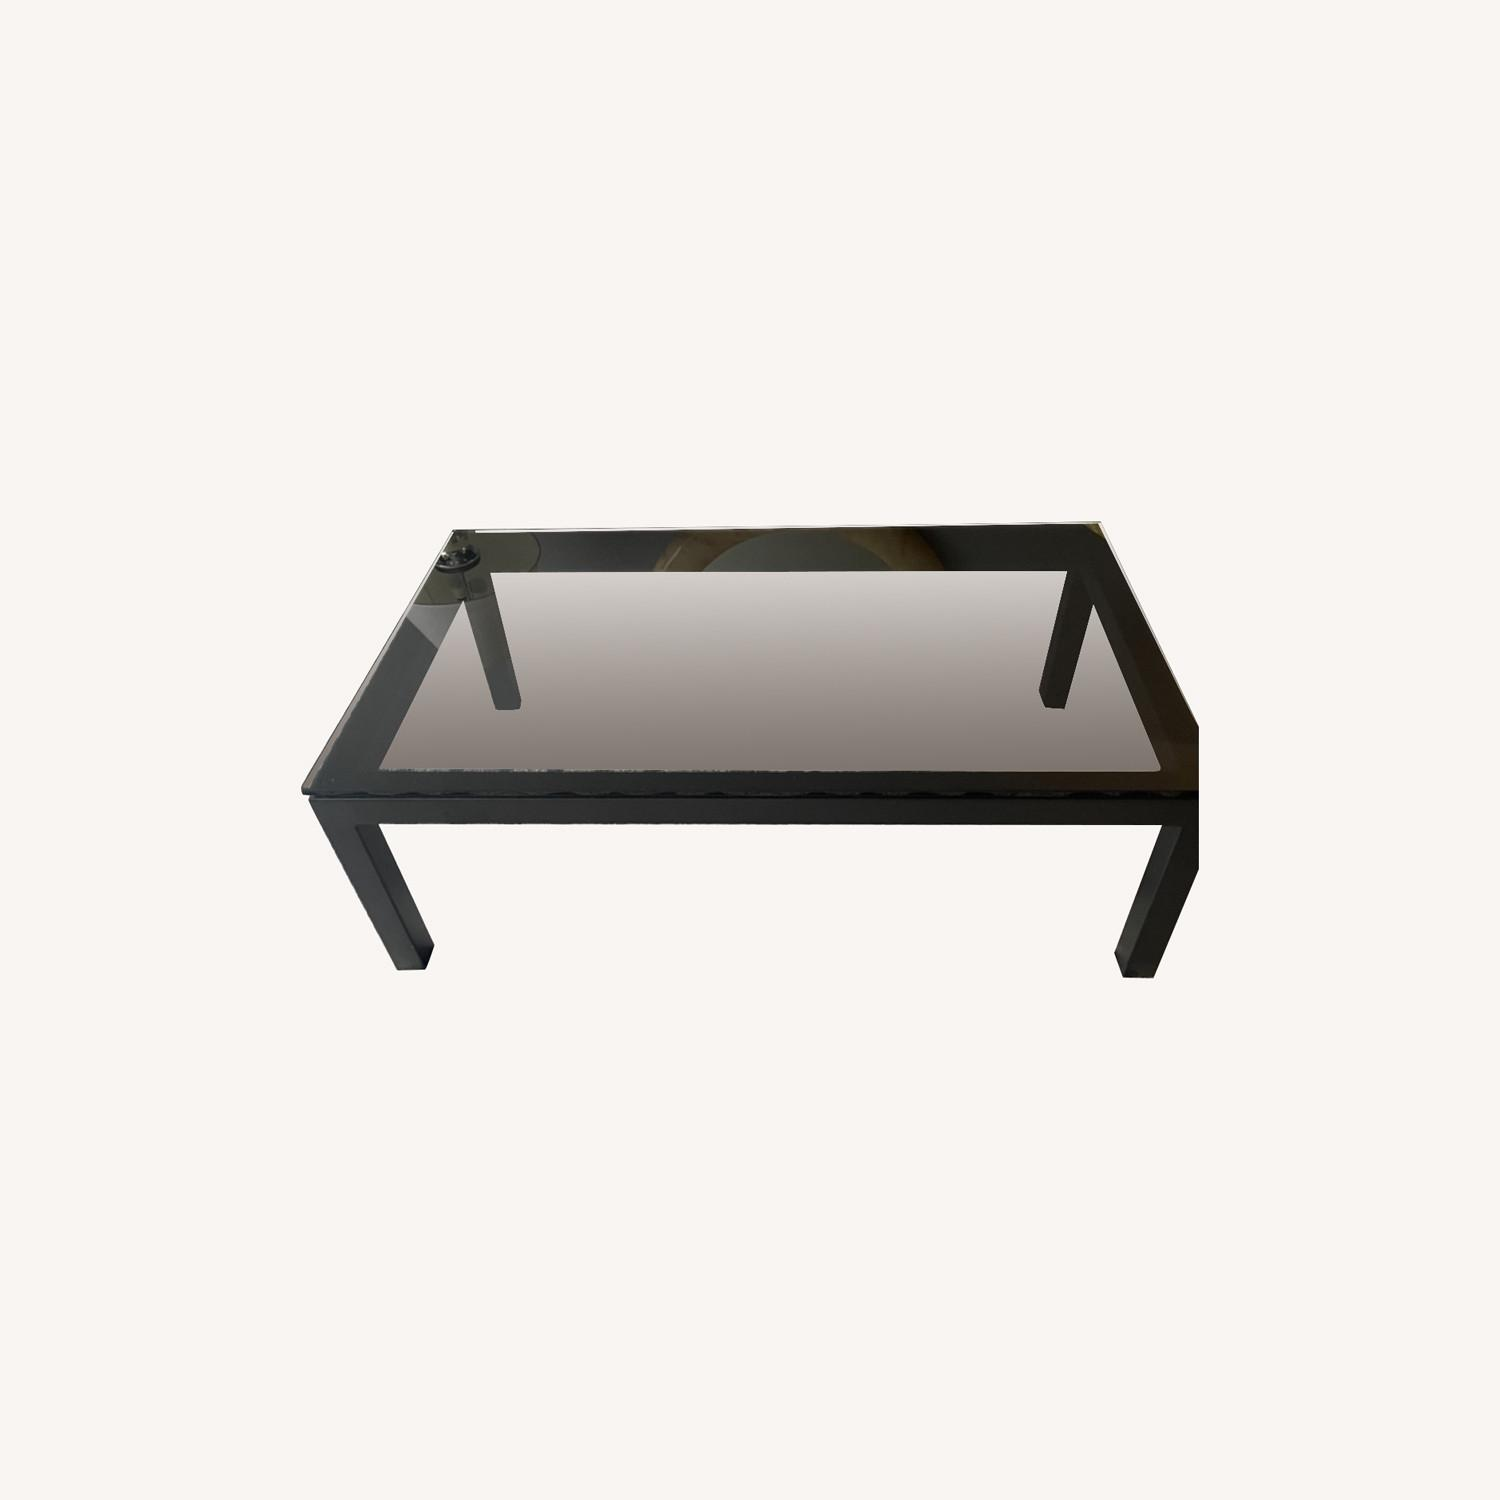 Crate and Barrel Smoked Glass Black Coffee Table - image-0